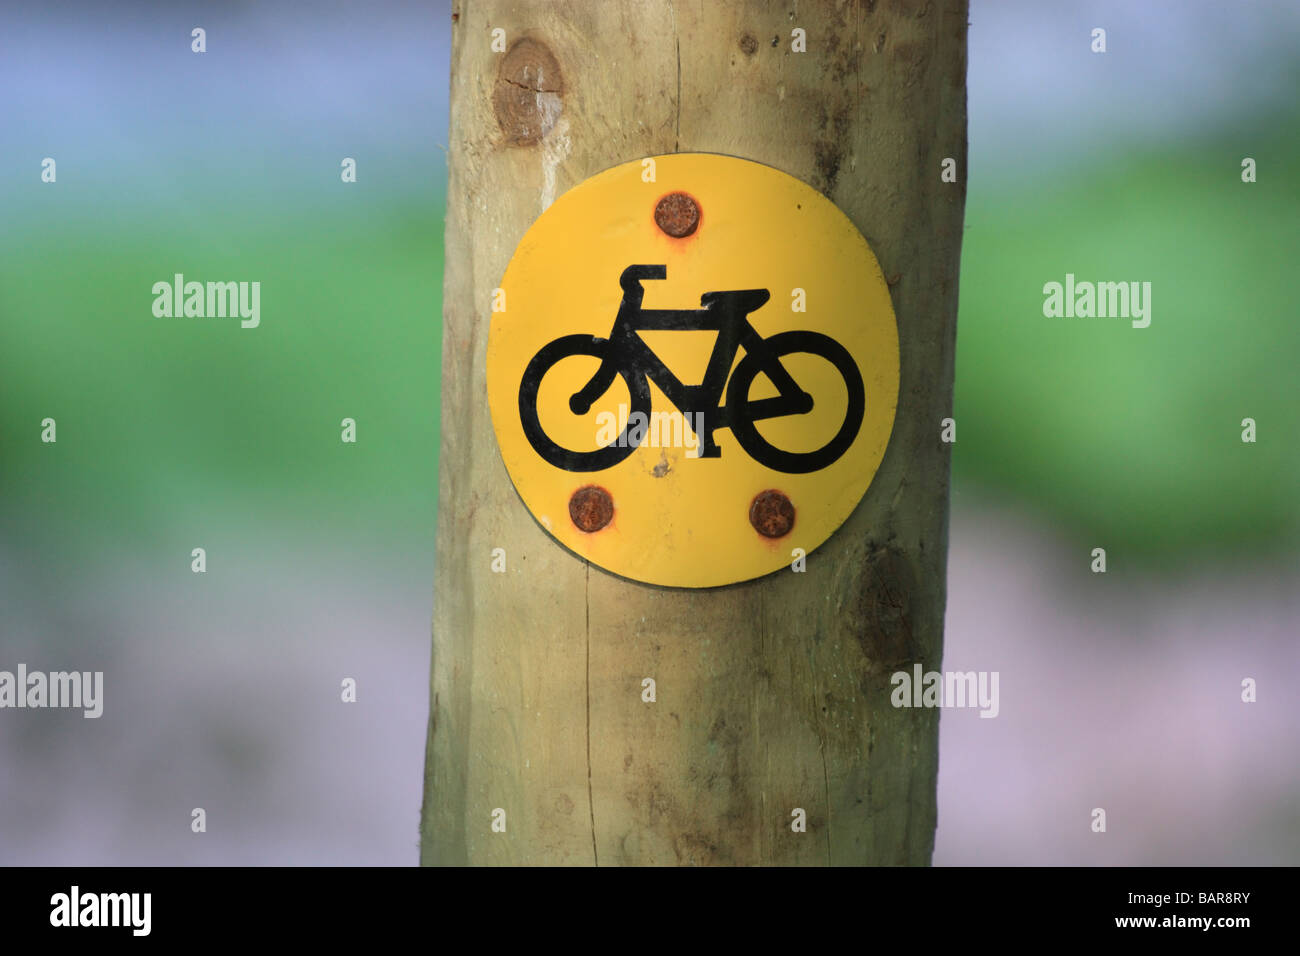 Cycle route sign on a wooden post, waymarking a mountain bike route - Stock Image